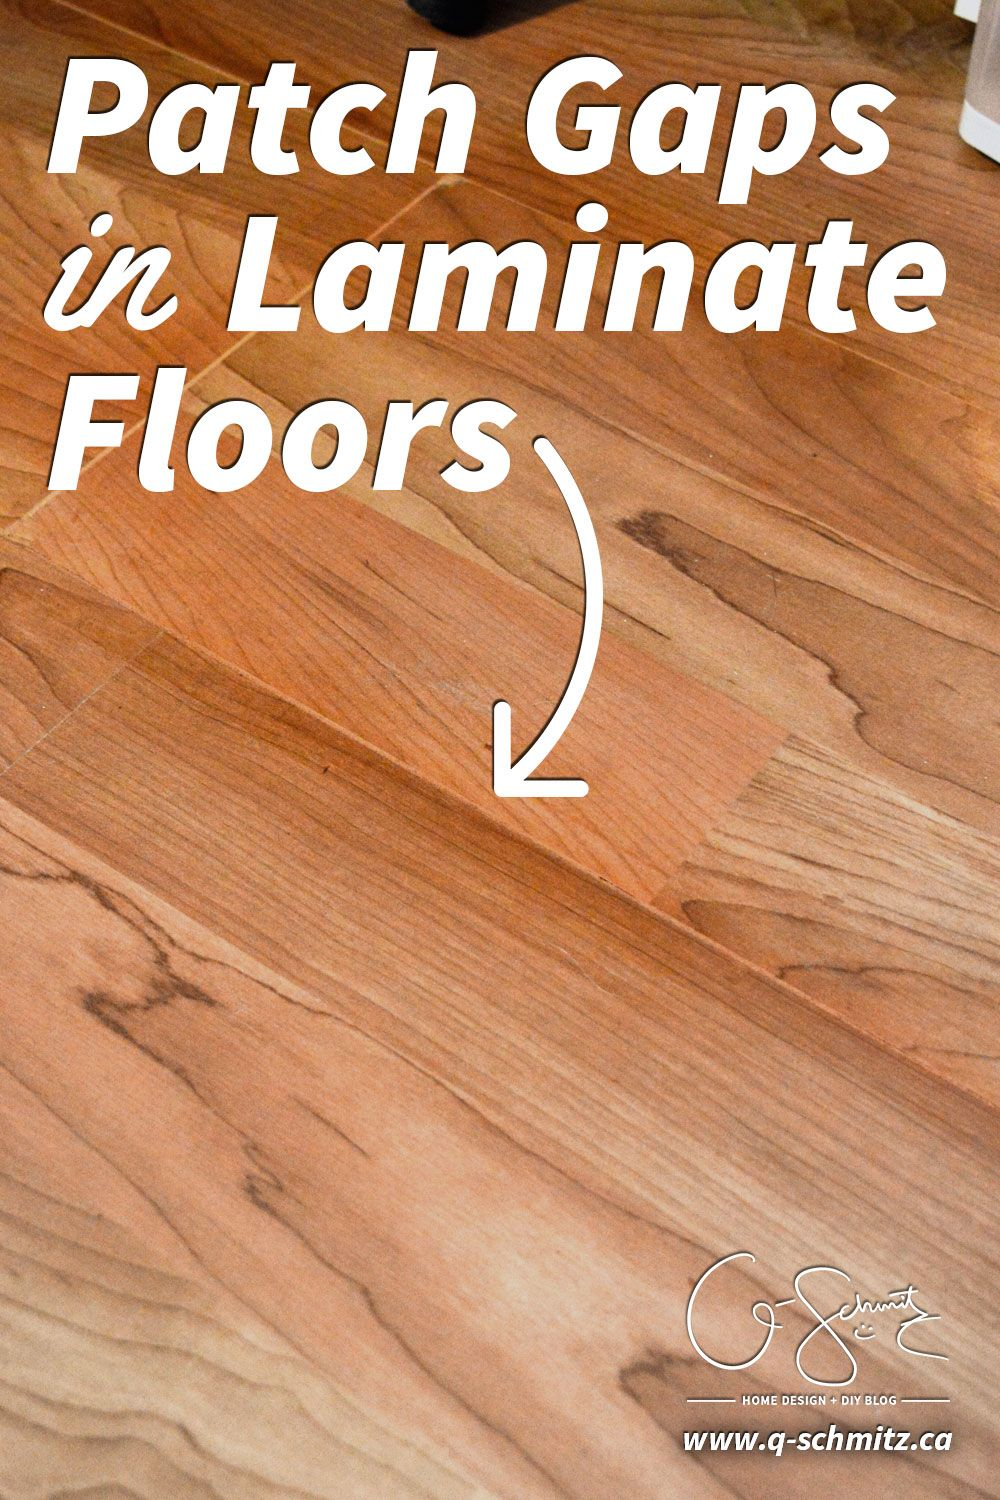 Patch Gaps In Laminate Floors Patches Walls And